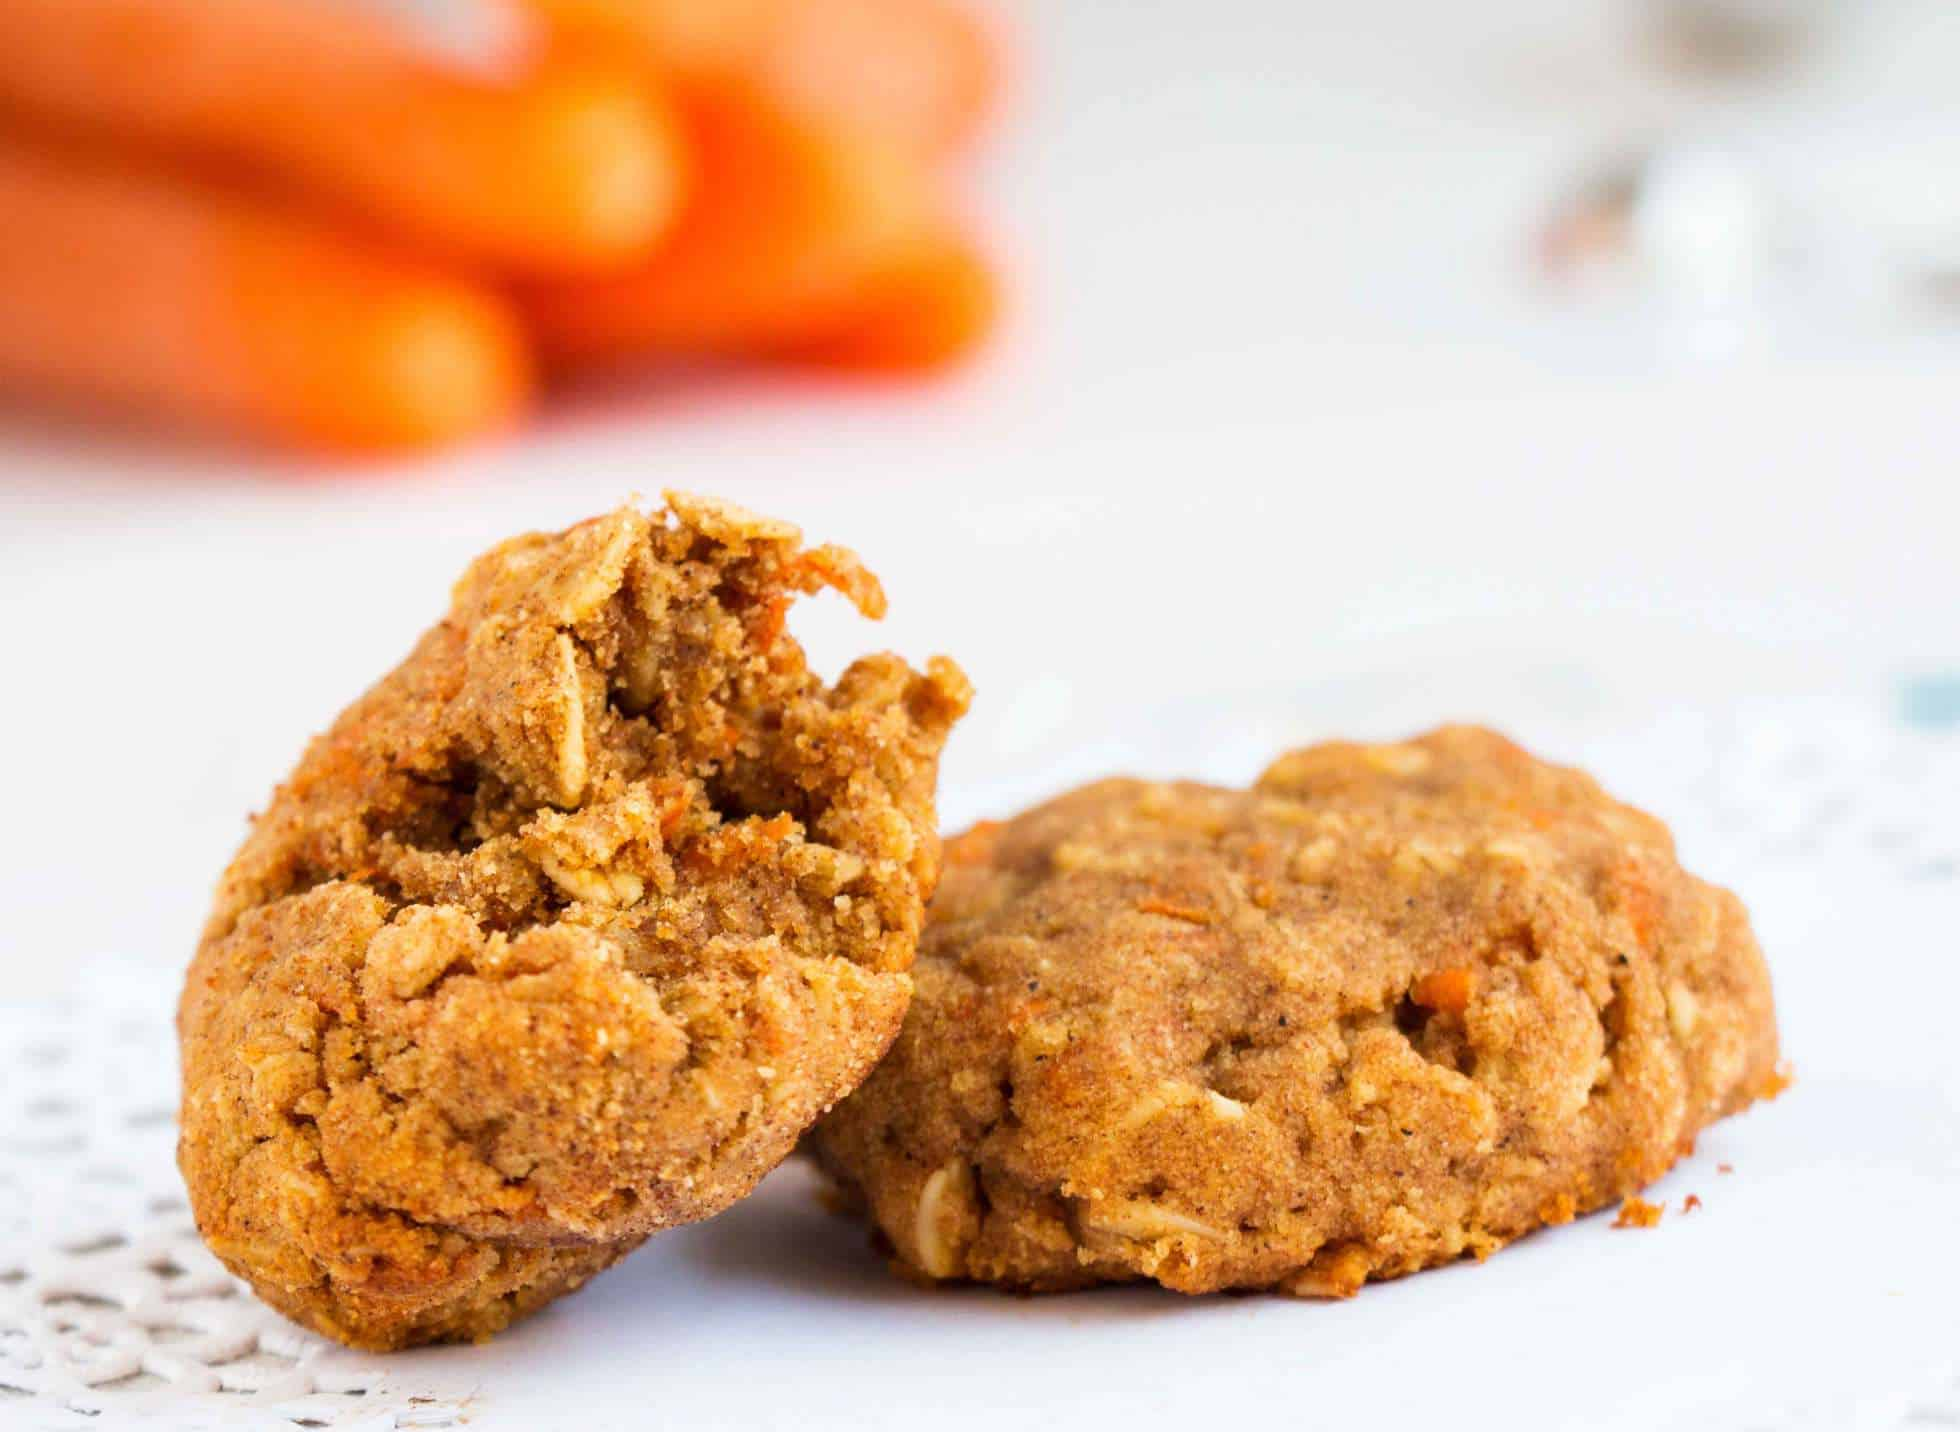 cinnamon carrot cookie with a bite out of it laying on another cookie